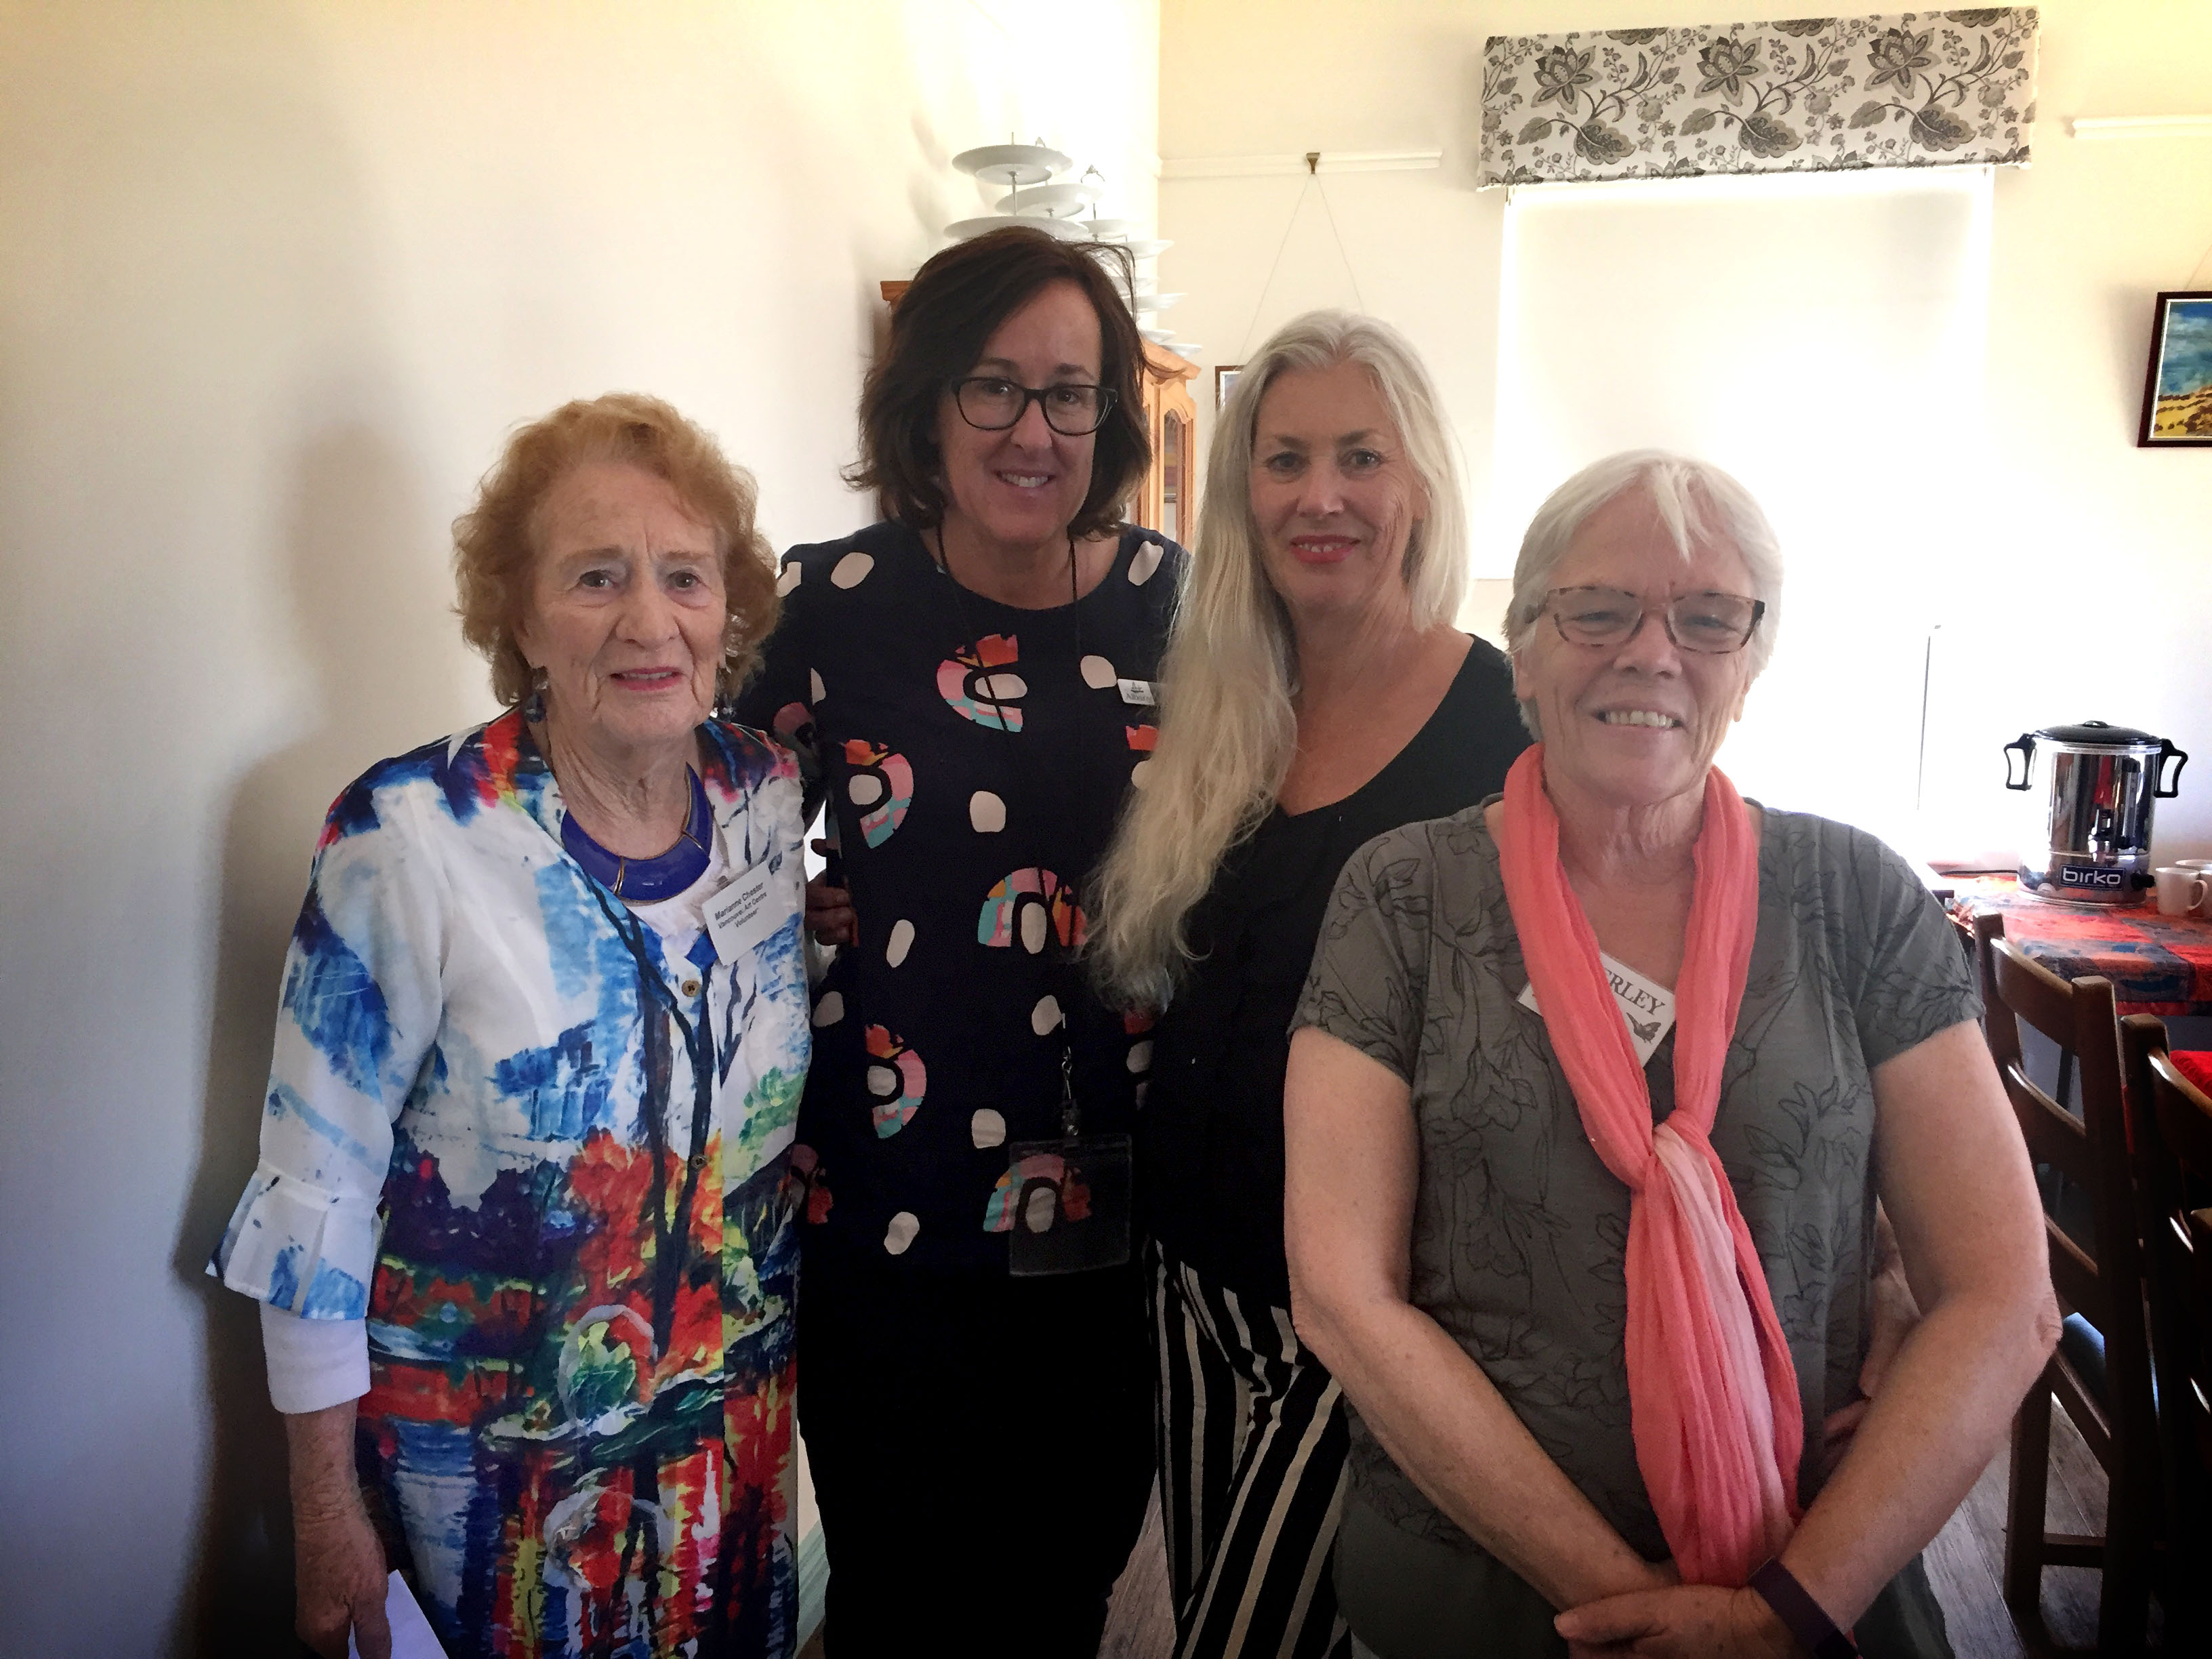 Lorriane Benson Hawthorne House Manager, with  Annmaree Lynch. Maryanne Chester Community Rep, with Vivienne Gardiner City of Albany Project Officer, and Beverley Smith, Aboriginal liaison Officer Hawthorn House